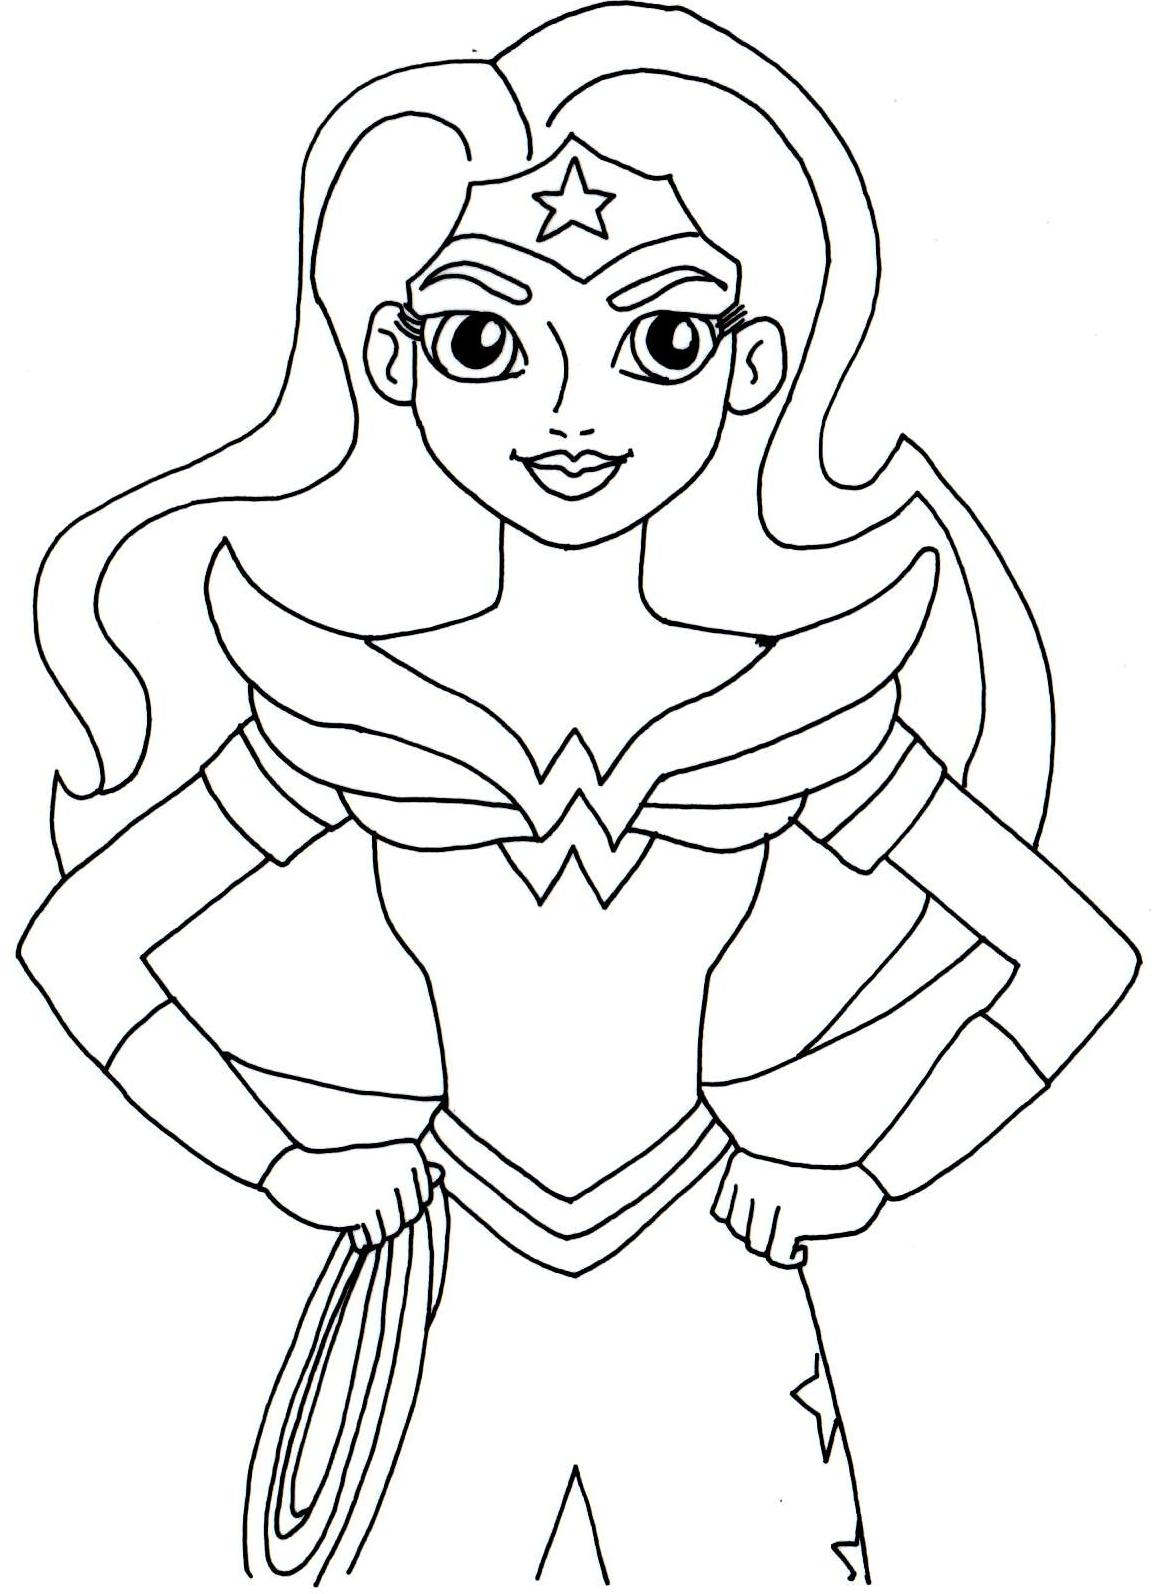 female superhero coloring pages Kaysmakehaukco